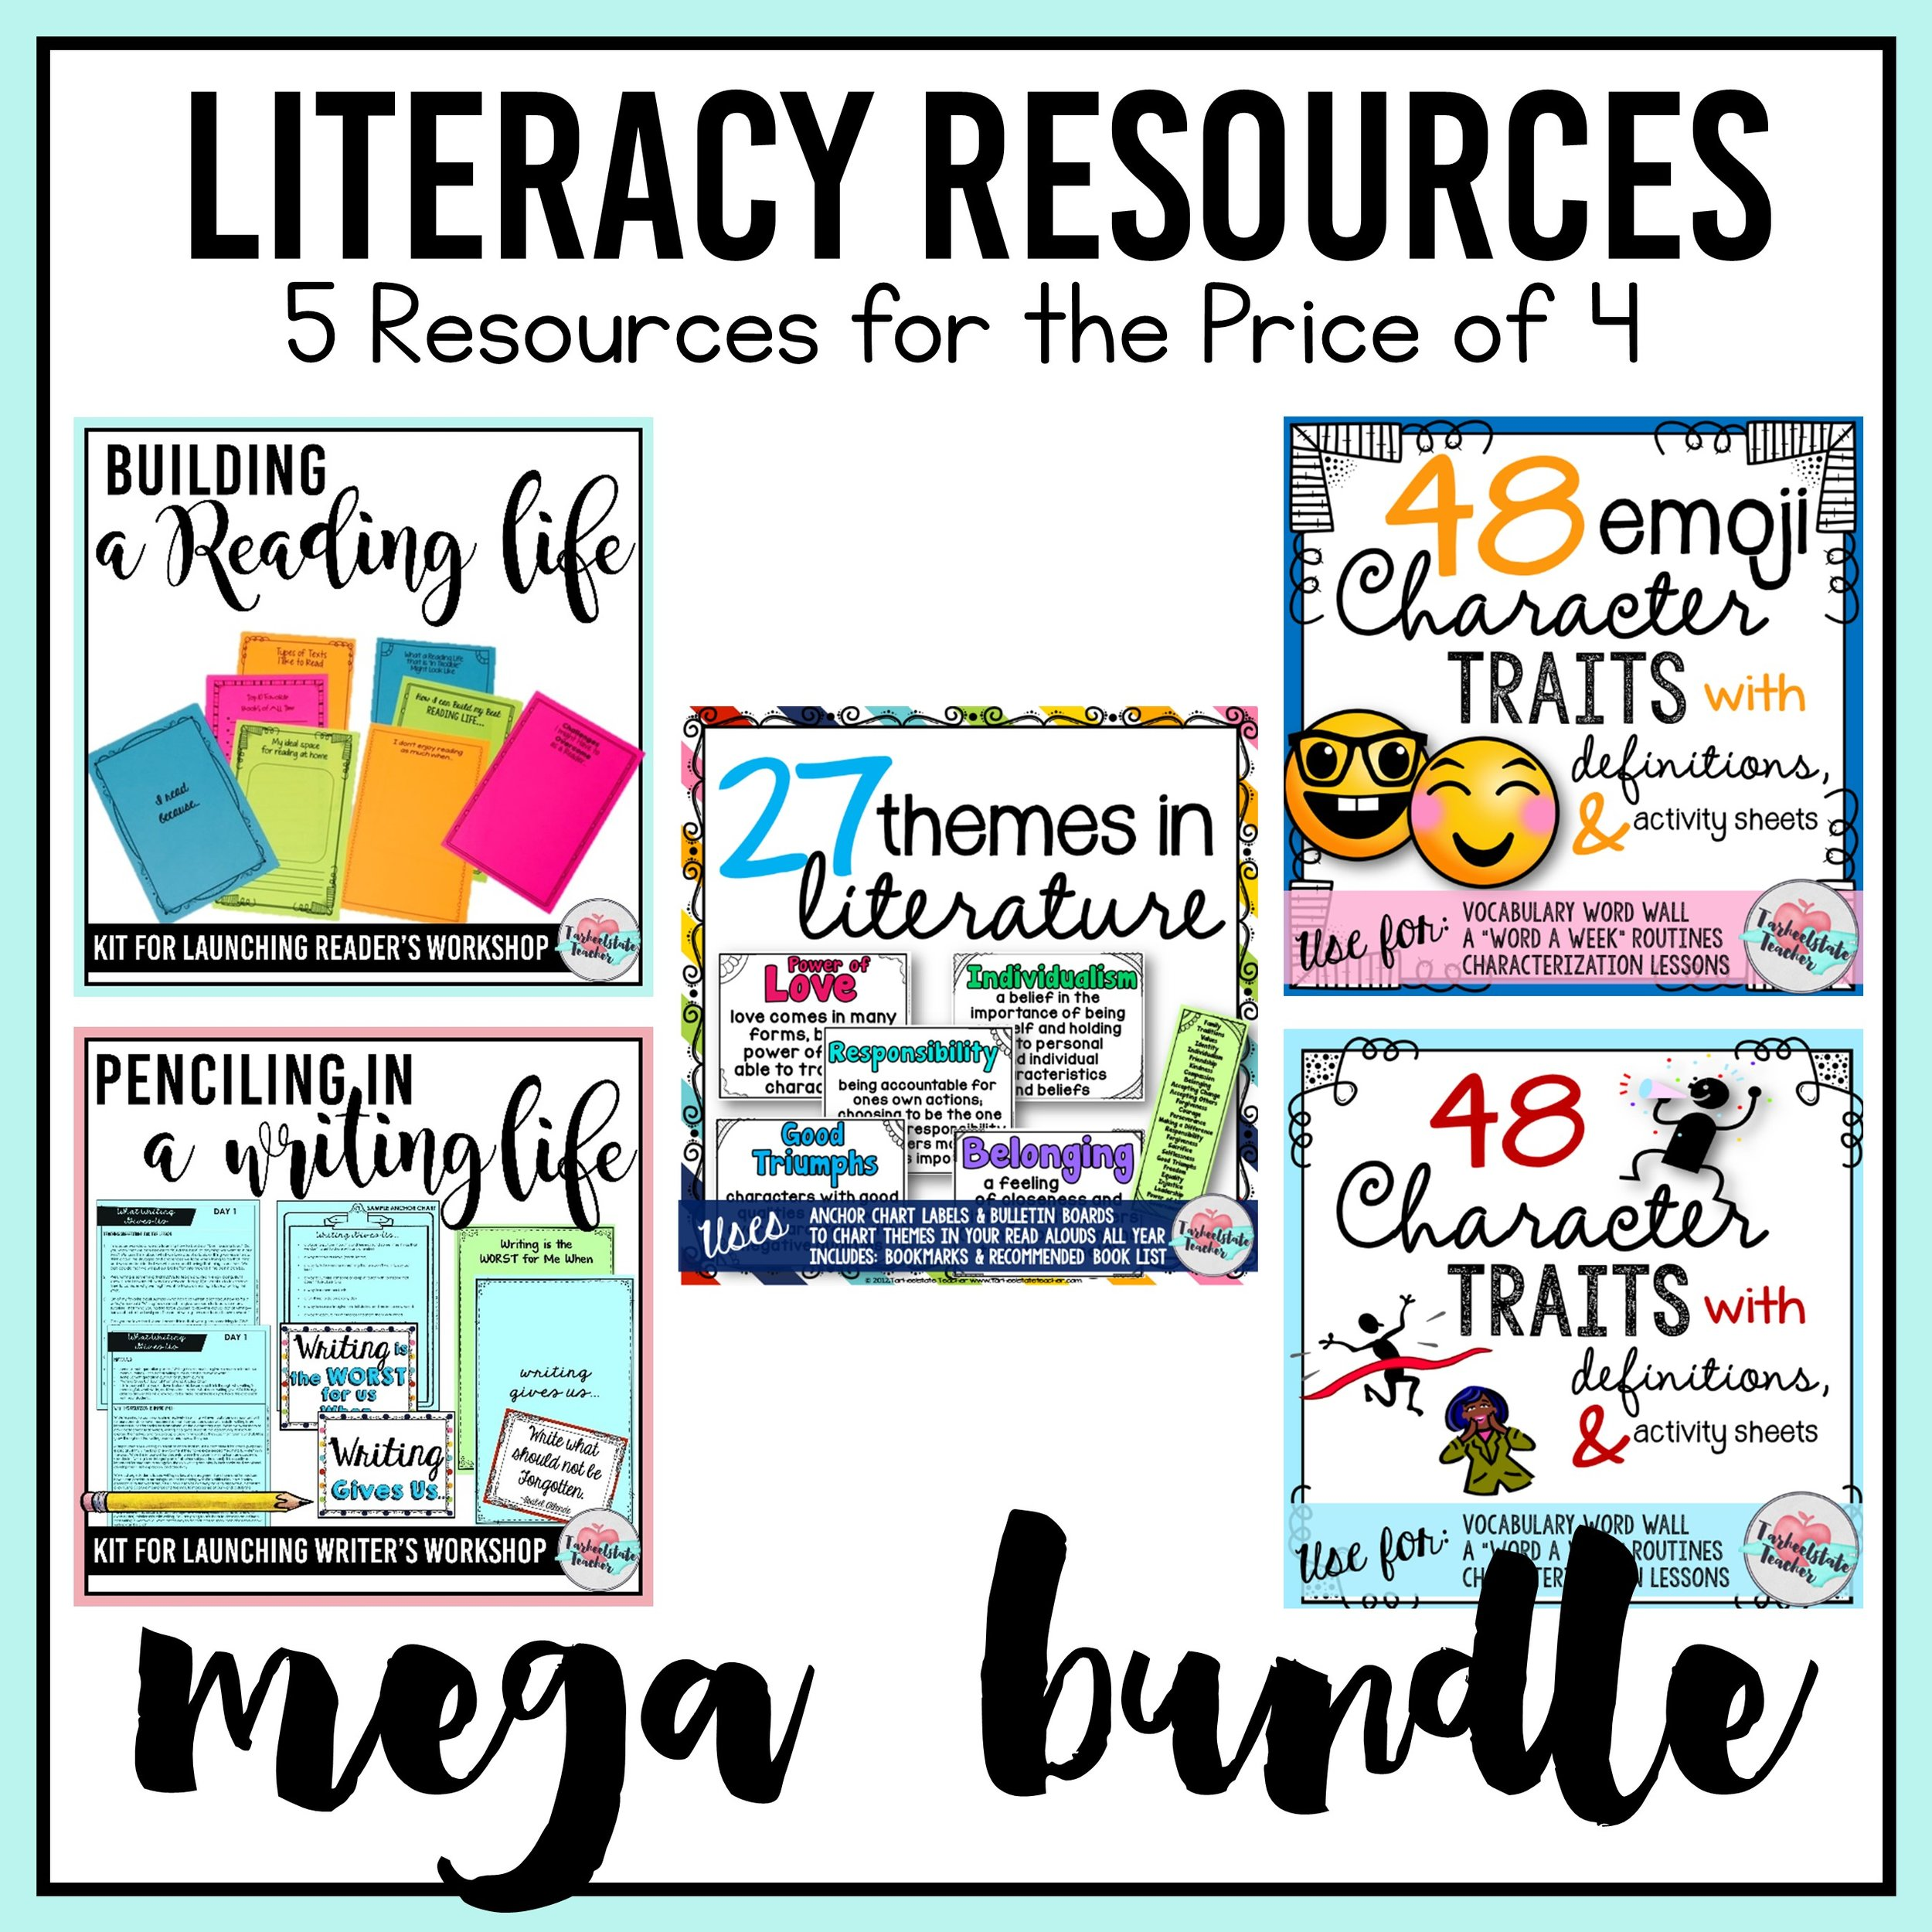 literacy resources upper elementary bundle.jpg